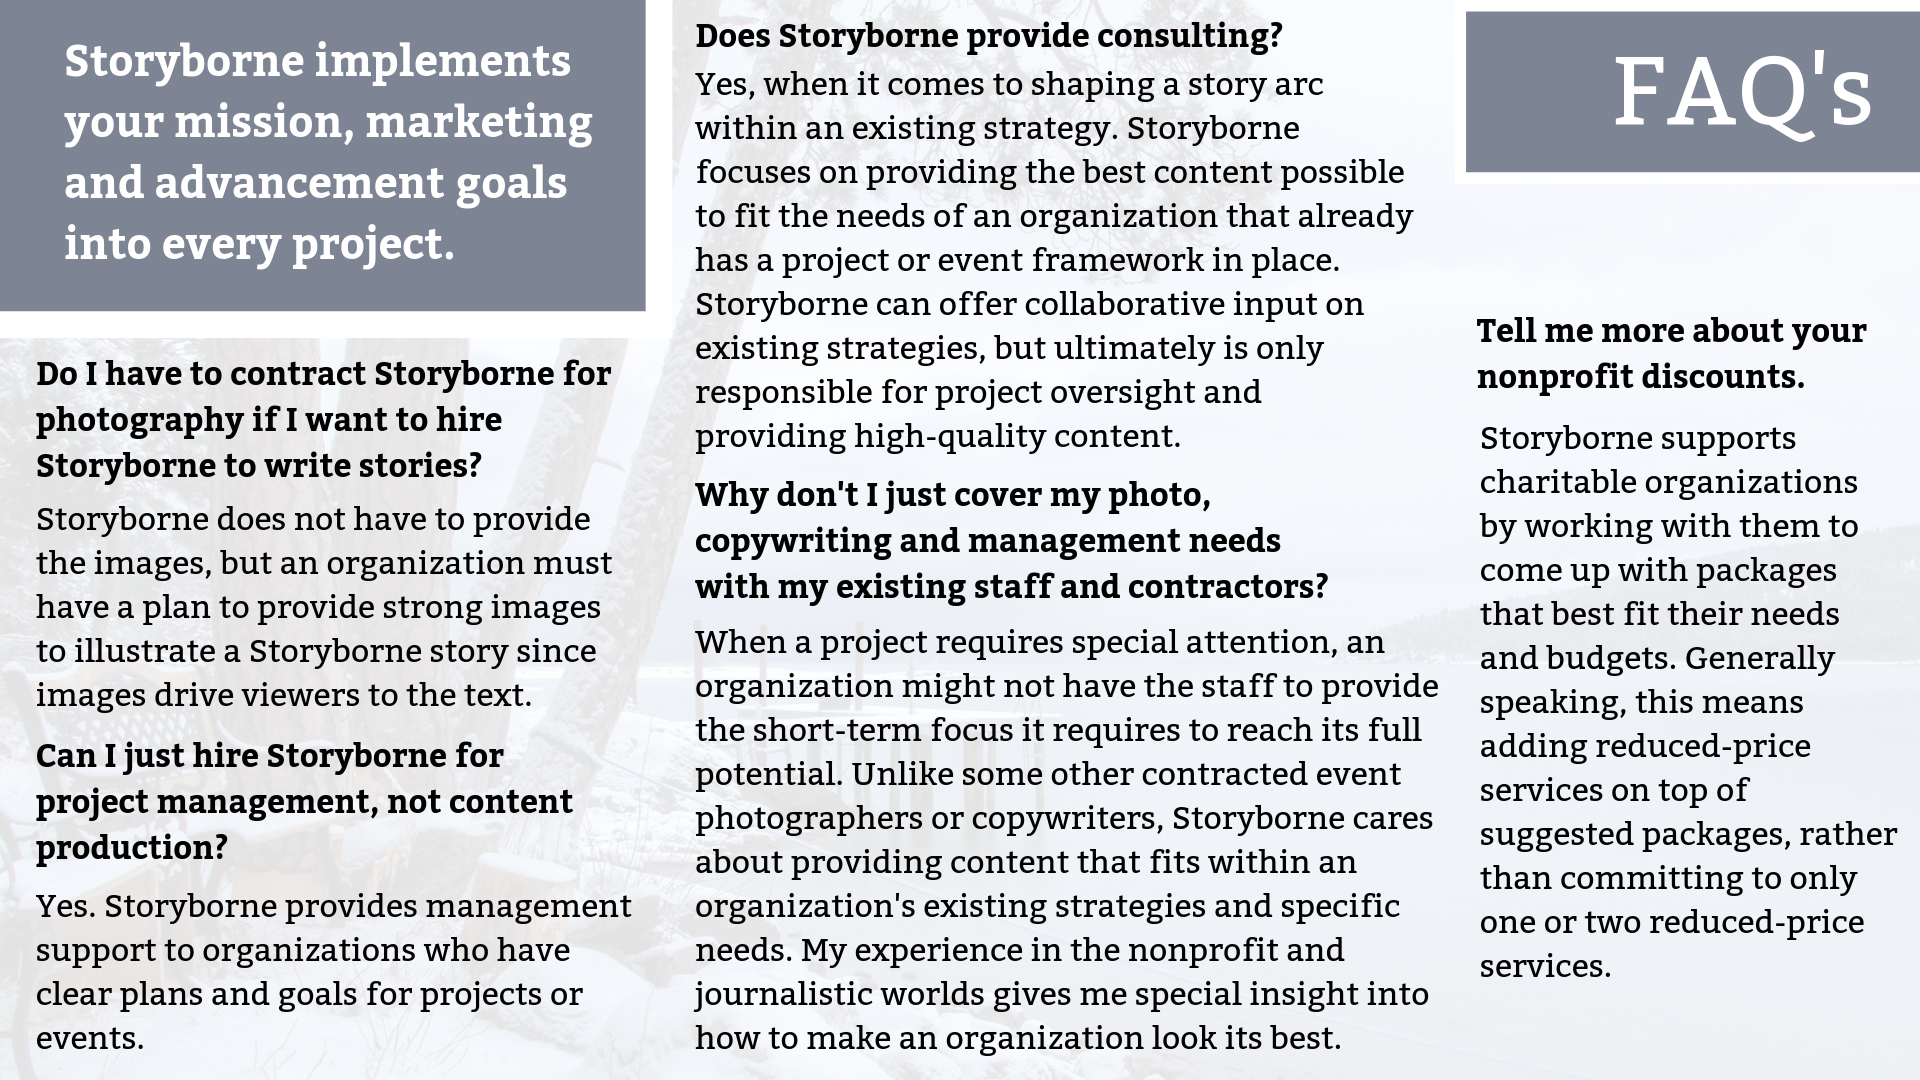 Bonnie-Obremski-Storyborne-Marketing-And-Project-Management-Services-FAQ.PNG